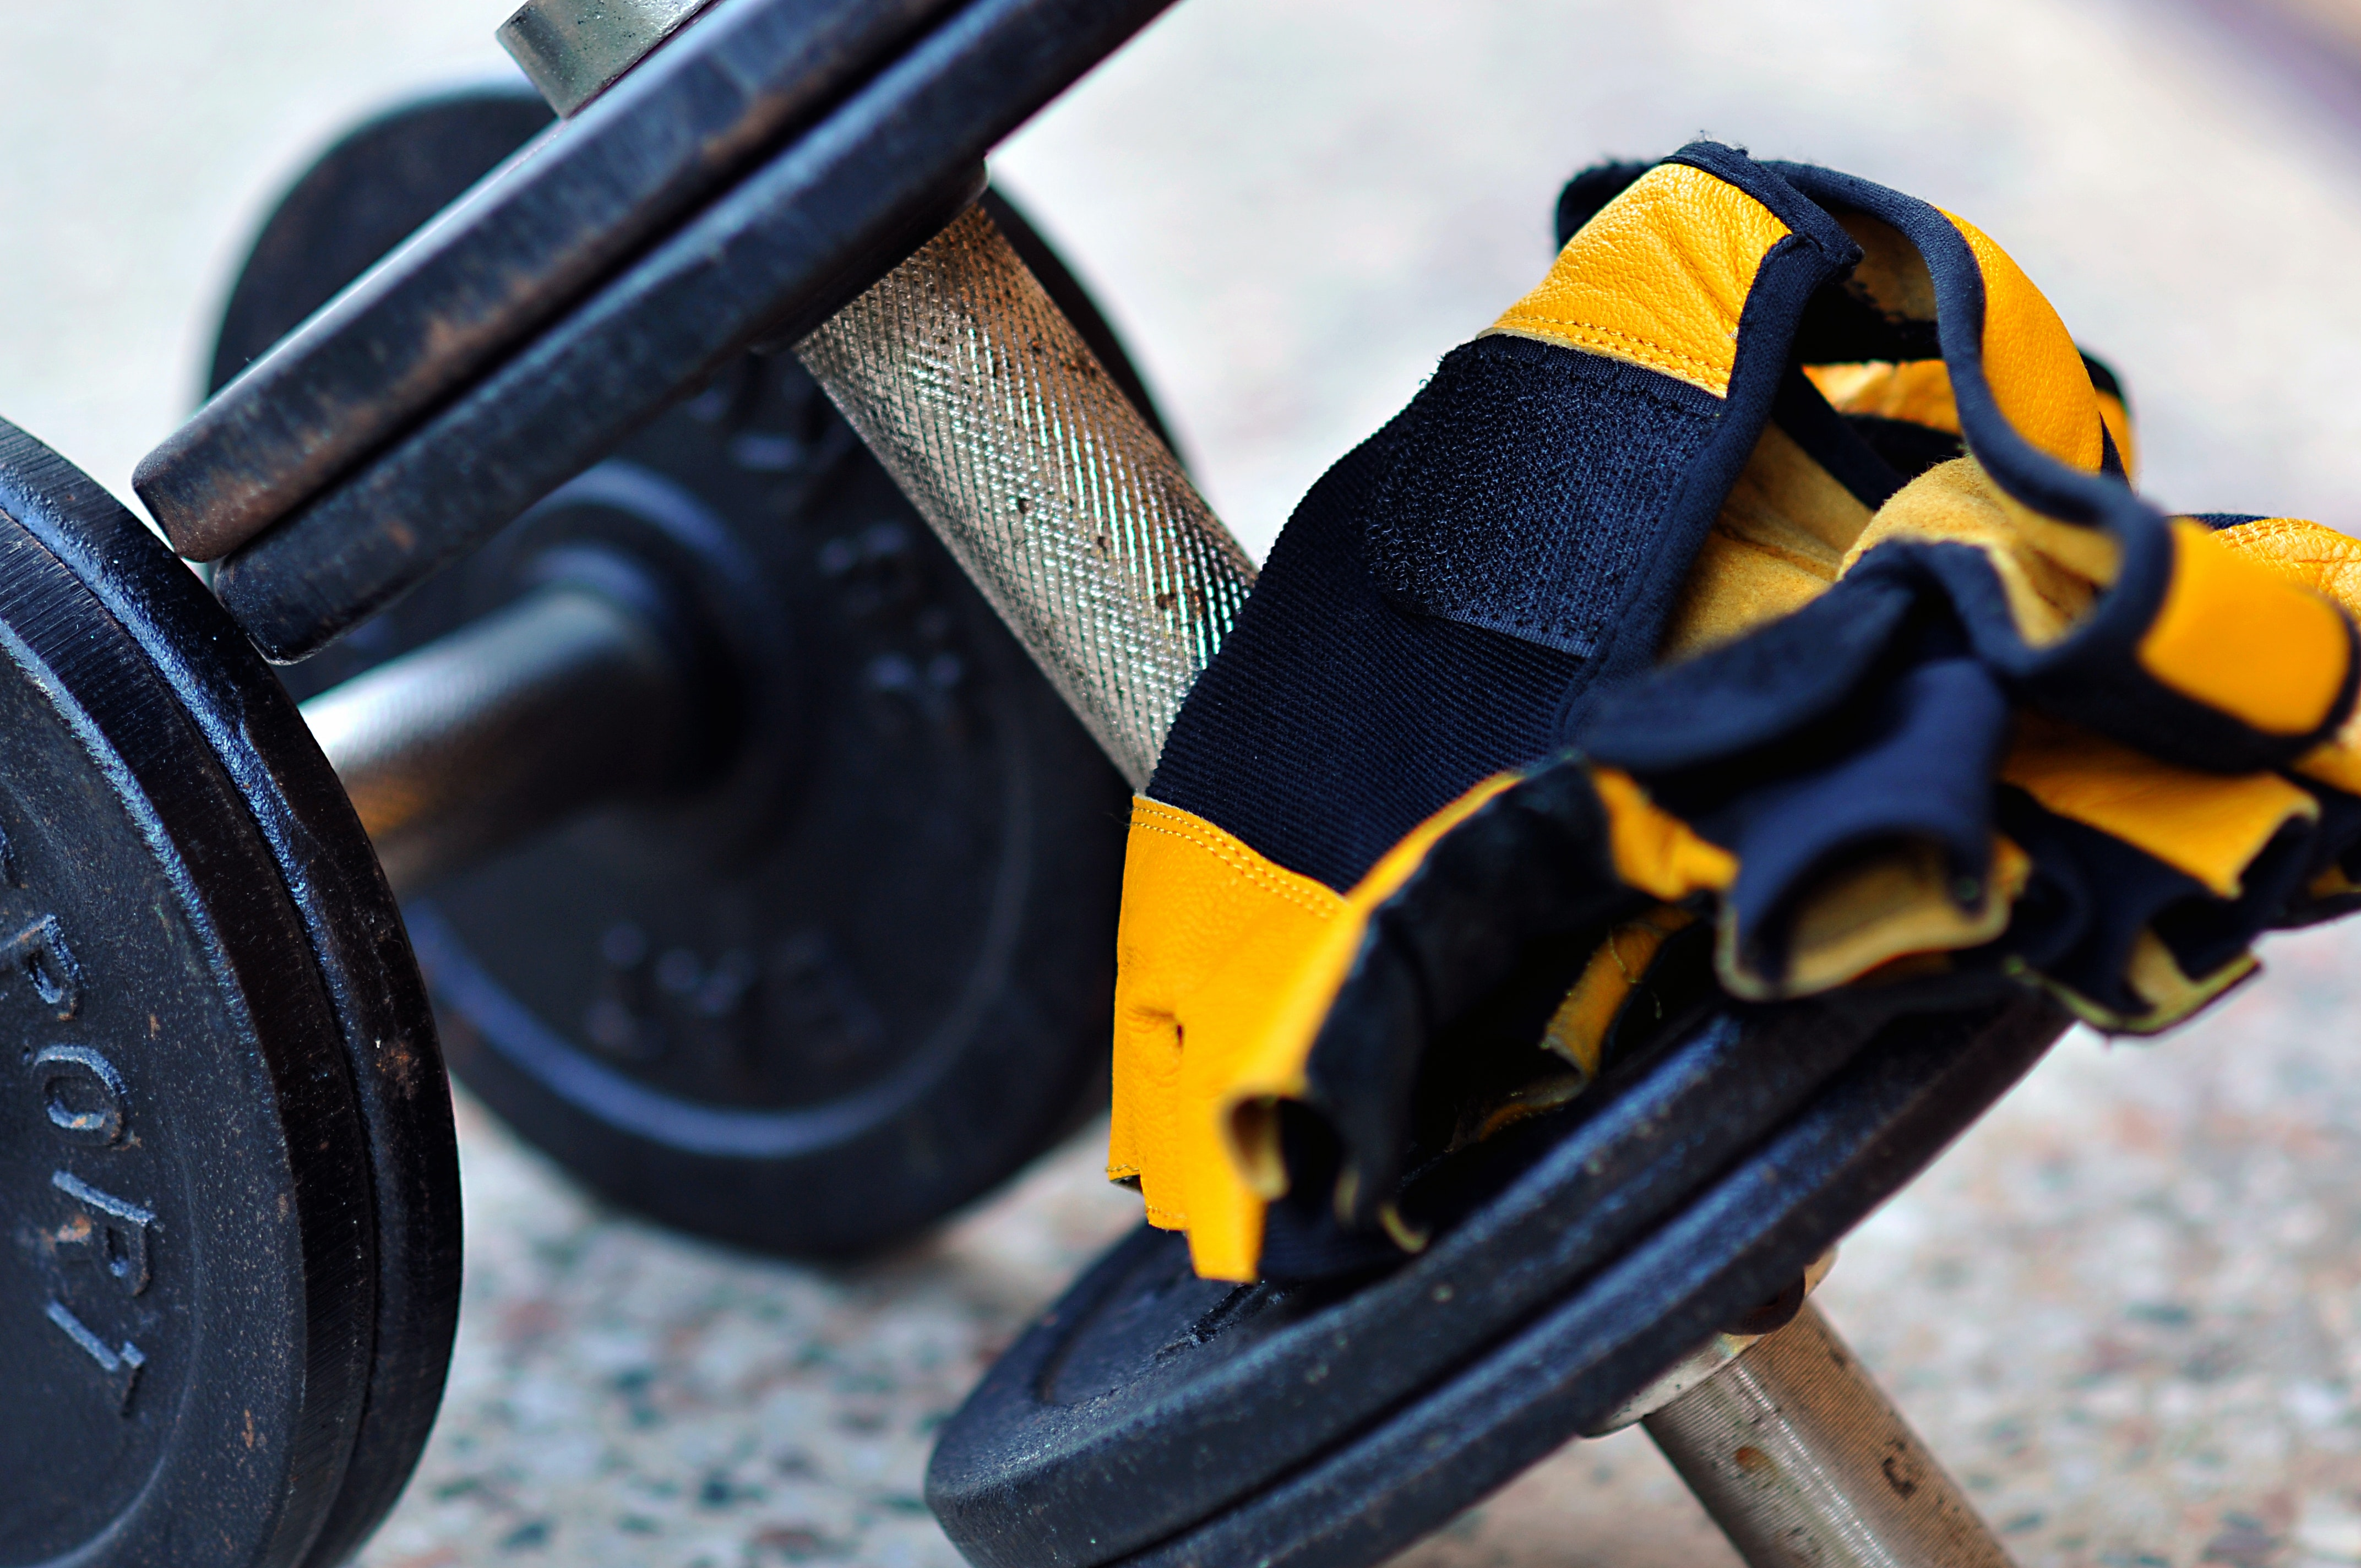 Where To Buy Roller Skate Shoes In Singapore